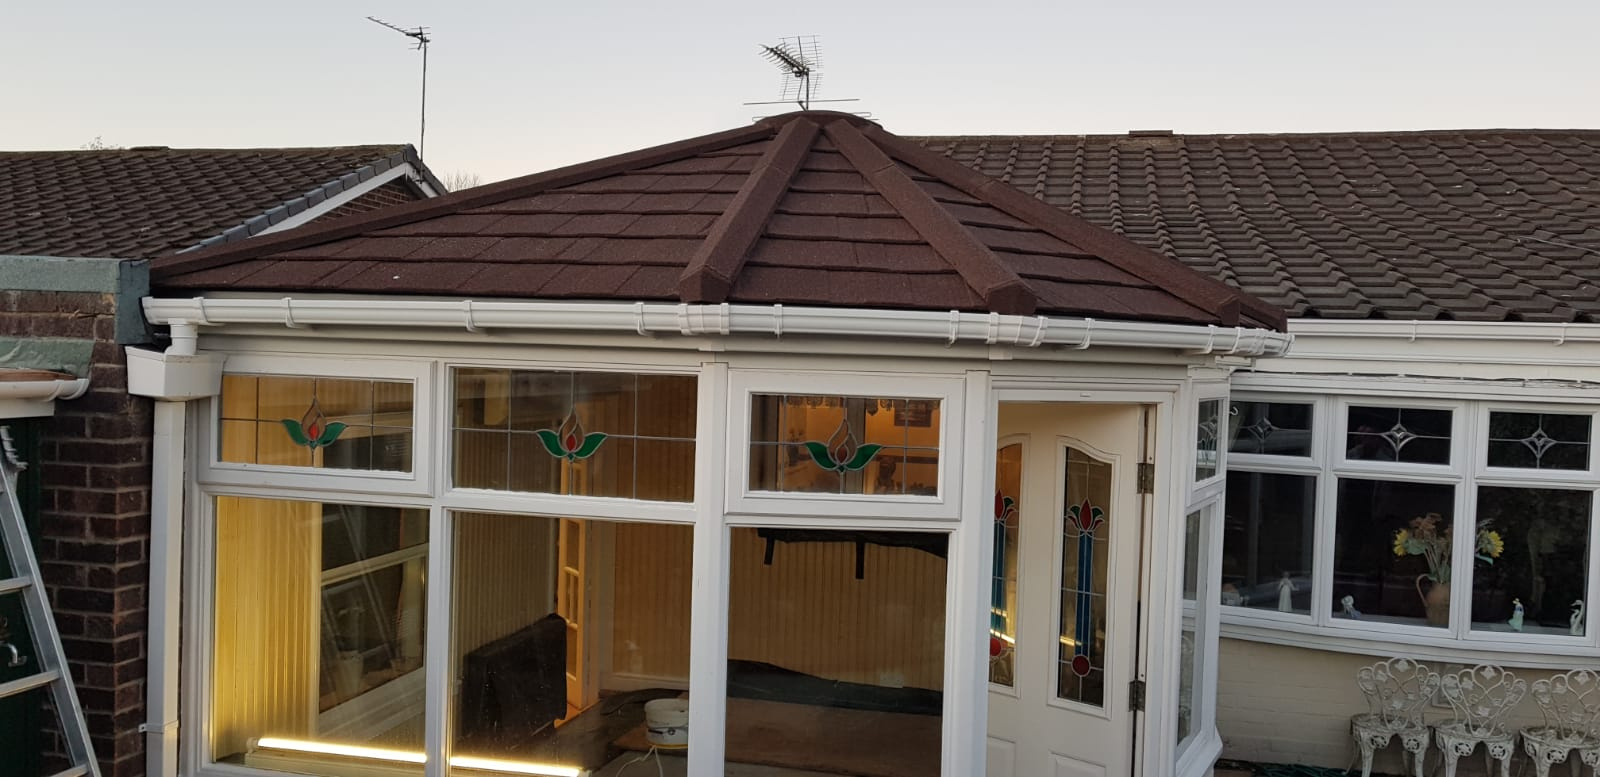 Enhance Conservatories Supalite Tiled Roof Systems